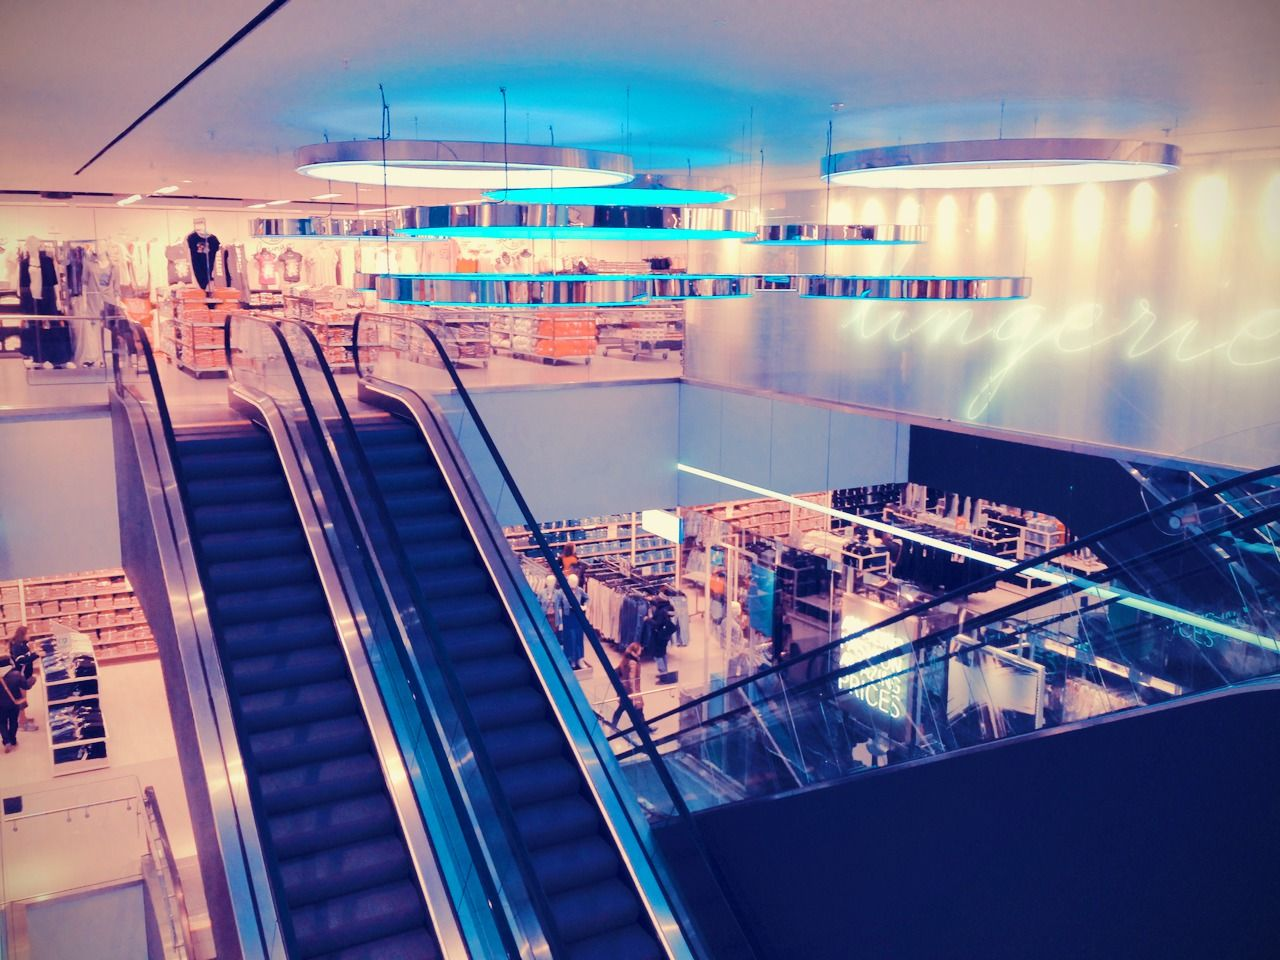 top floor at the #London #TottenhamCourtRoad flagship store #primarkUK